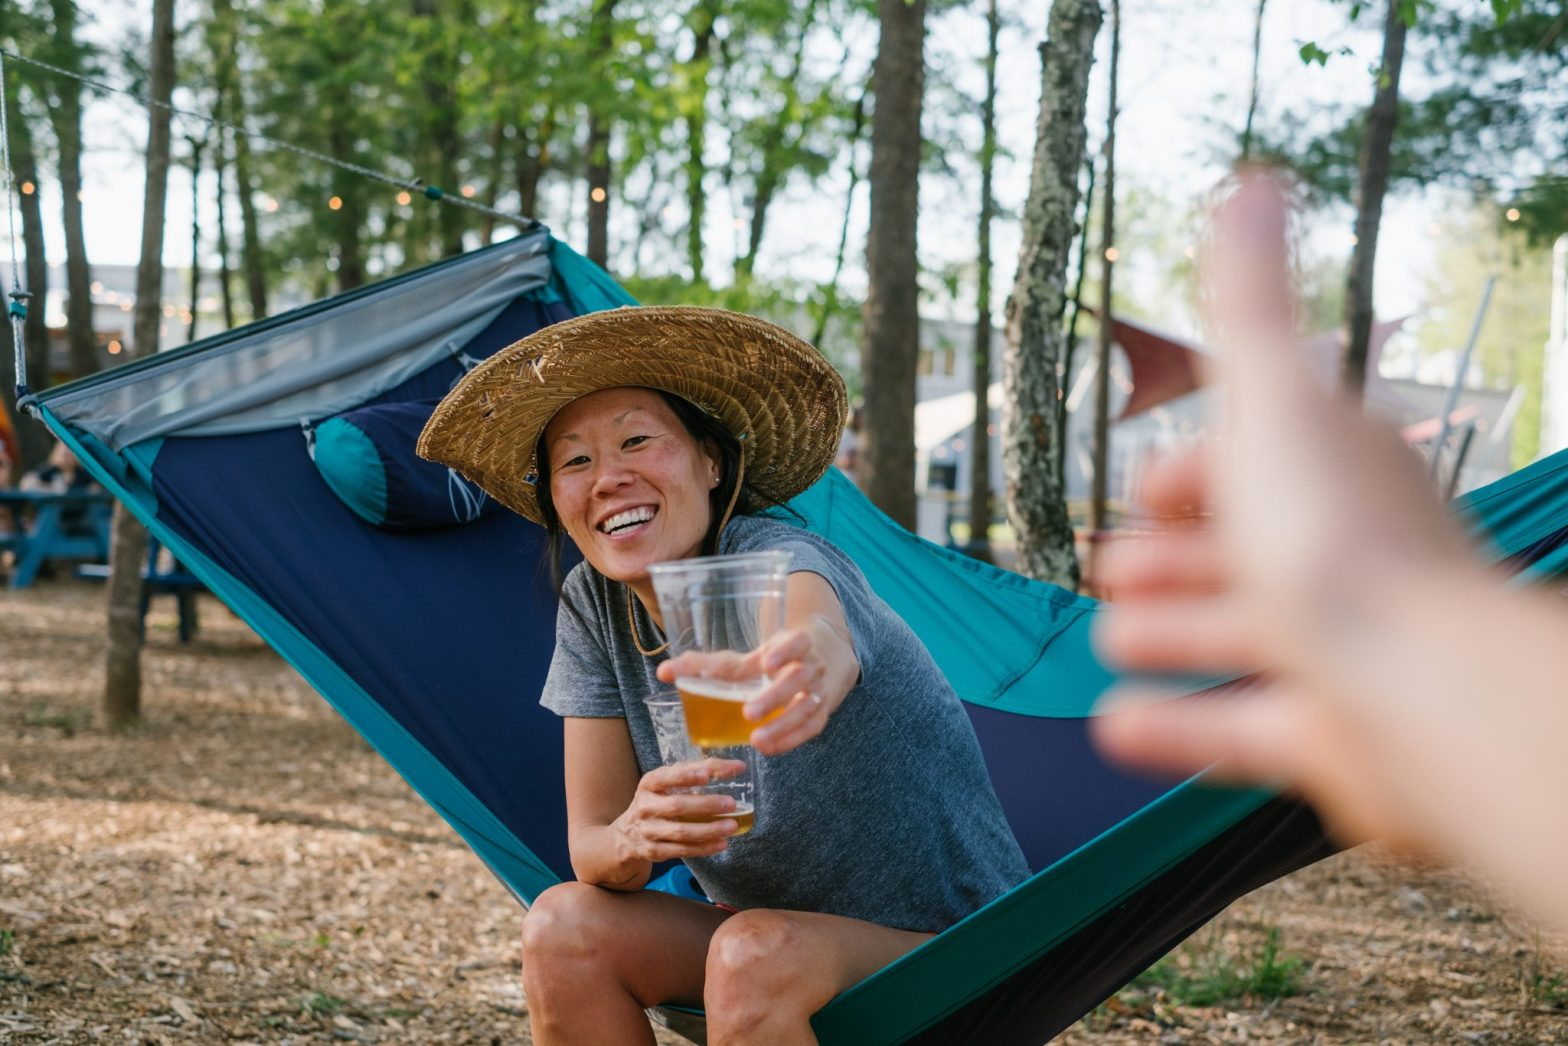 Erin McGrady sitting in ENO's SkyLoft Hammock in the meadow area at Highland Brewing in Asheville, NC. She is wearing a straw hat and is holding a cup with beer in it and offering one to a blurred out hand in the foreground.